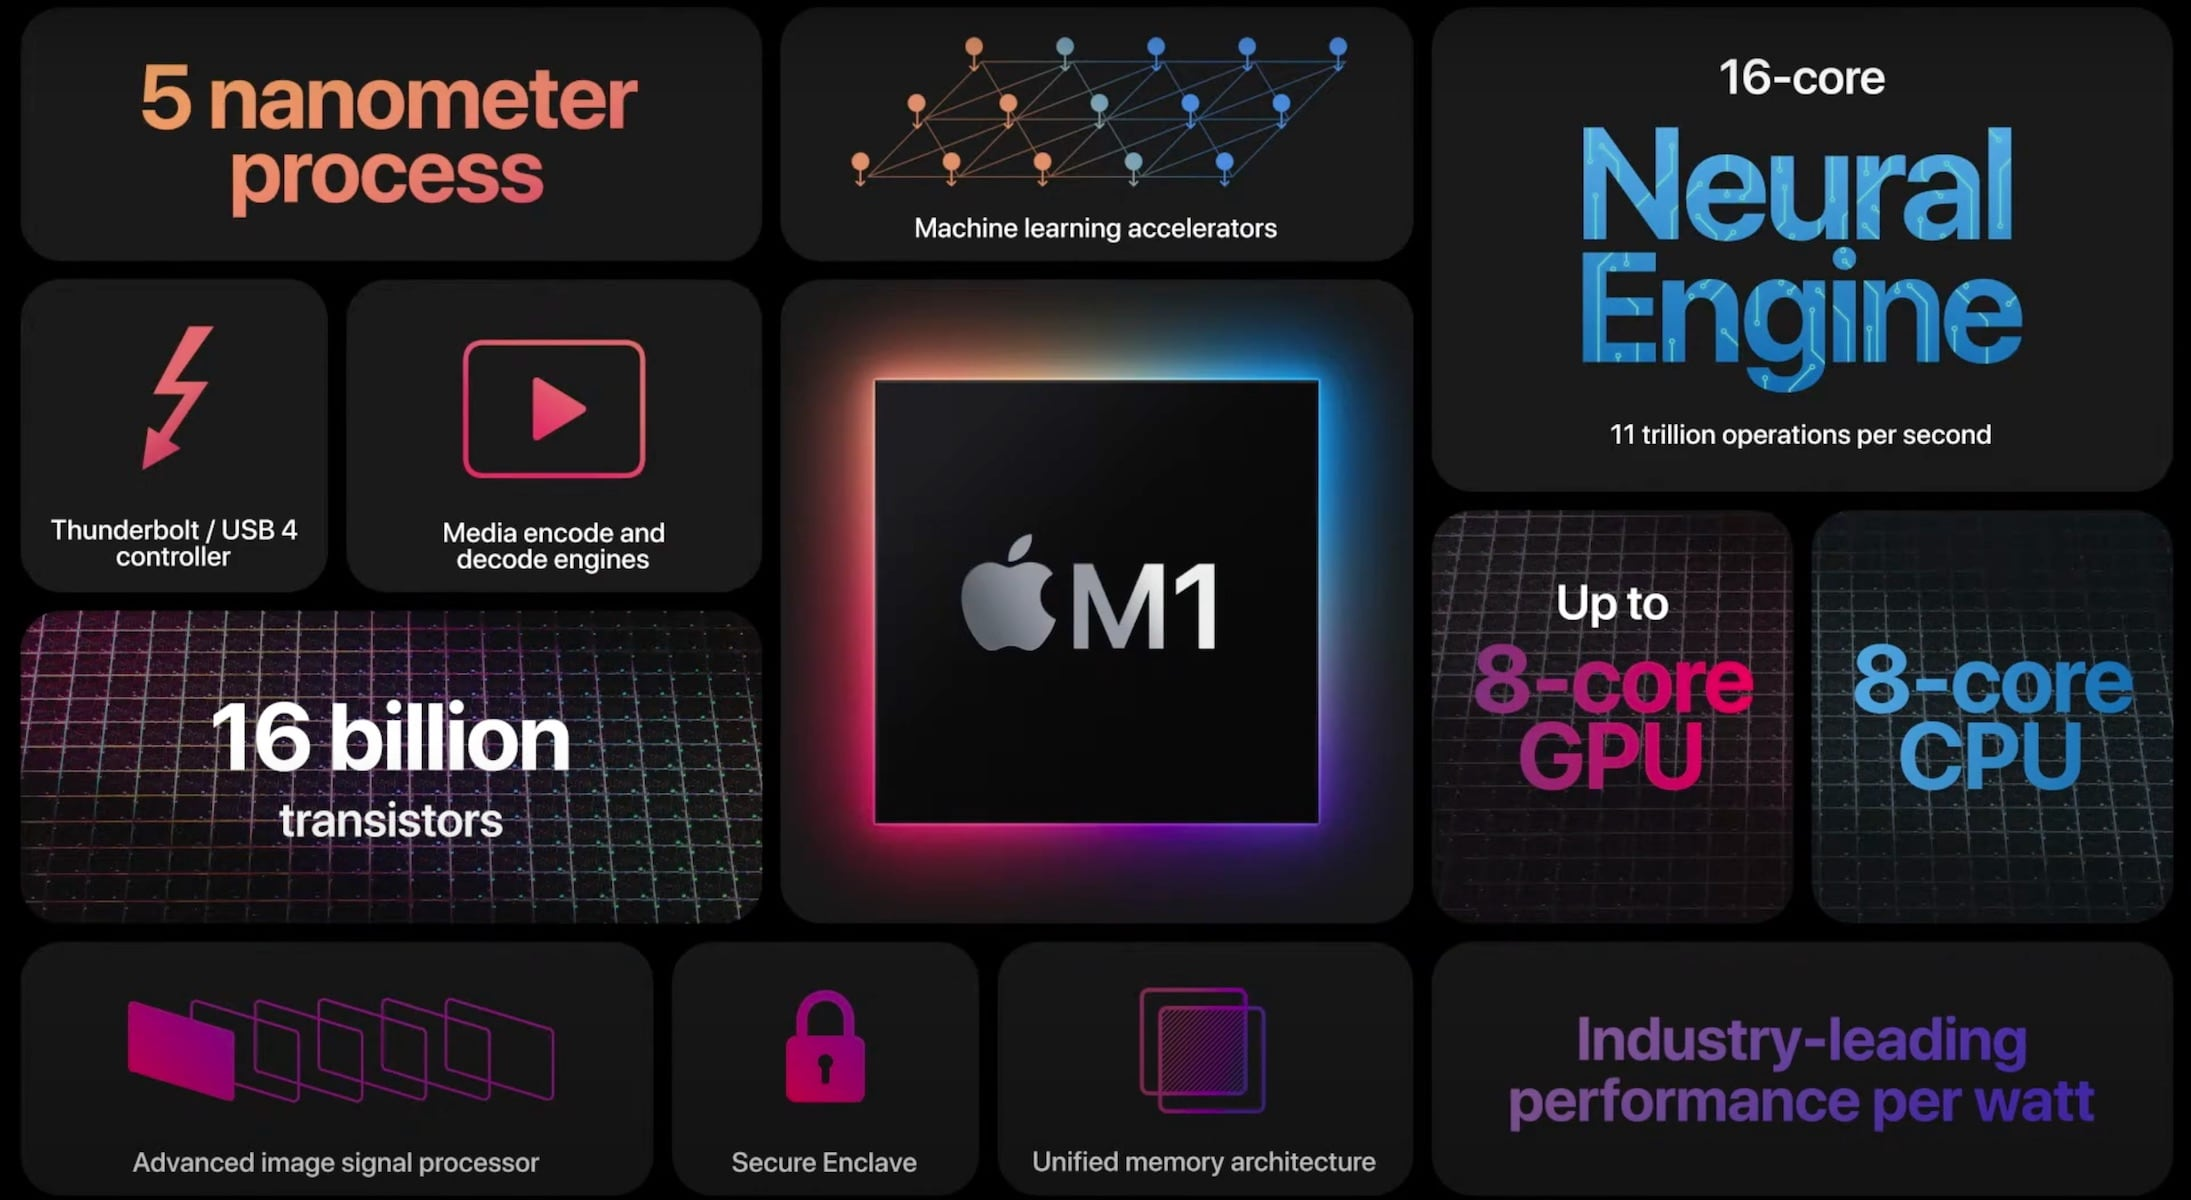 Apple Silicon Macs—should you buy the new Macs with the M1 chip?